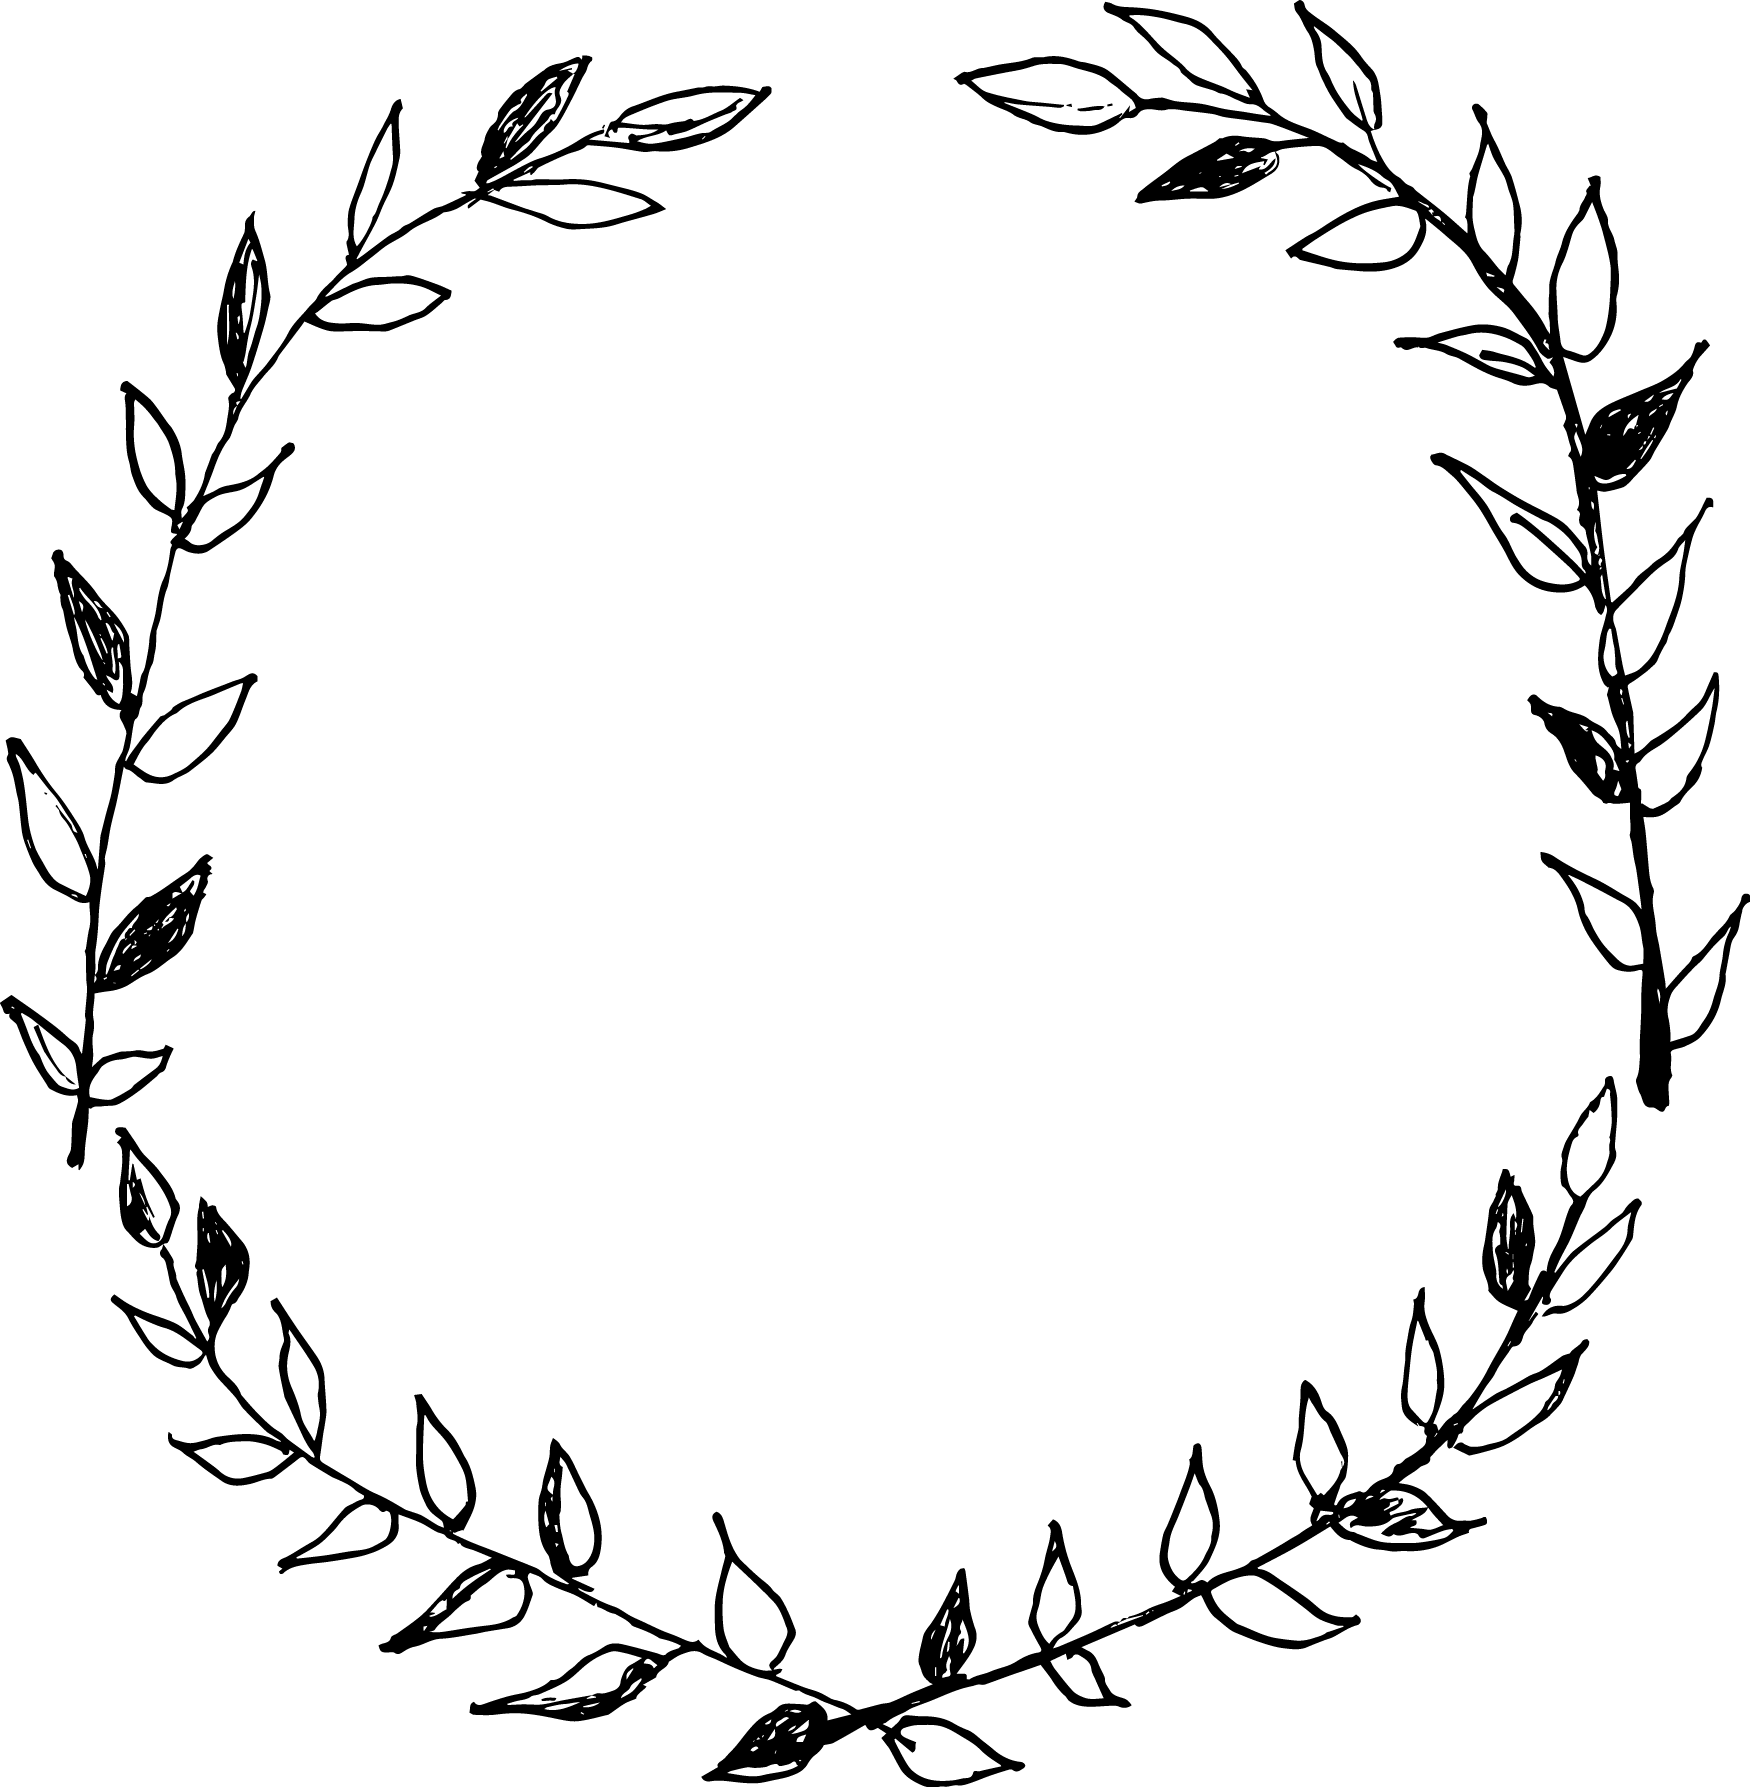 Drawing at getdrawings com. Circle clipart wreath